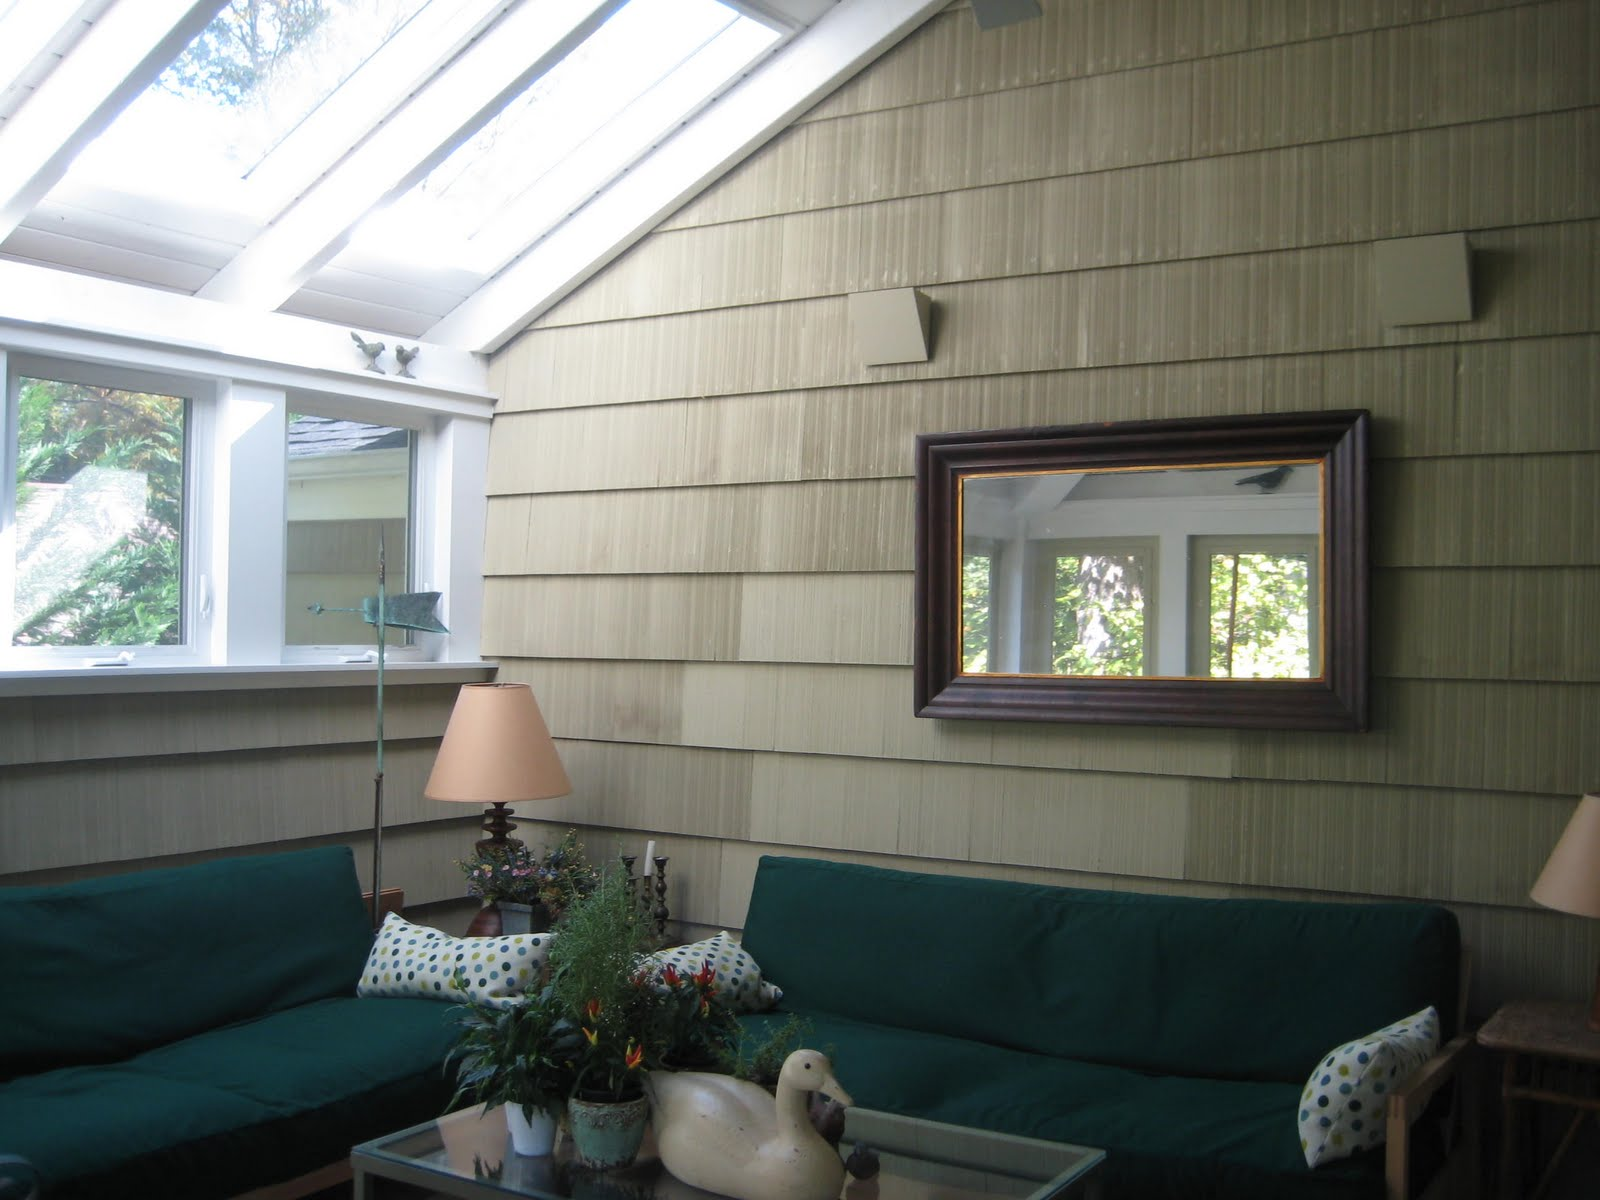 Enjoy the outdoors year-round with sunrooms...